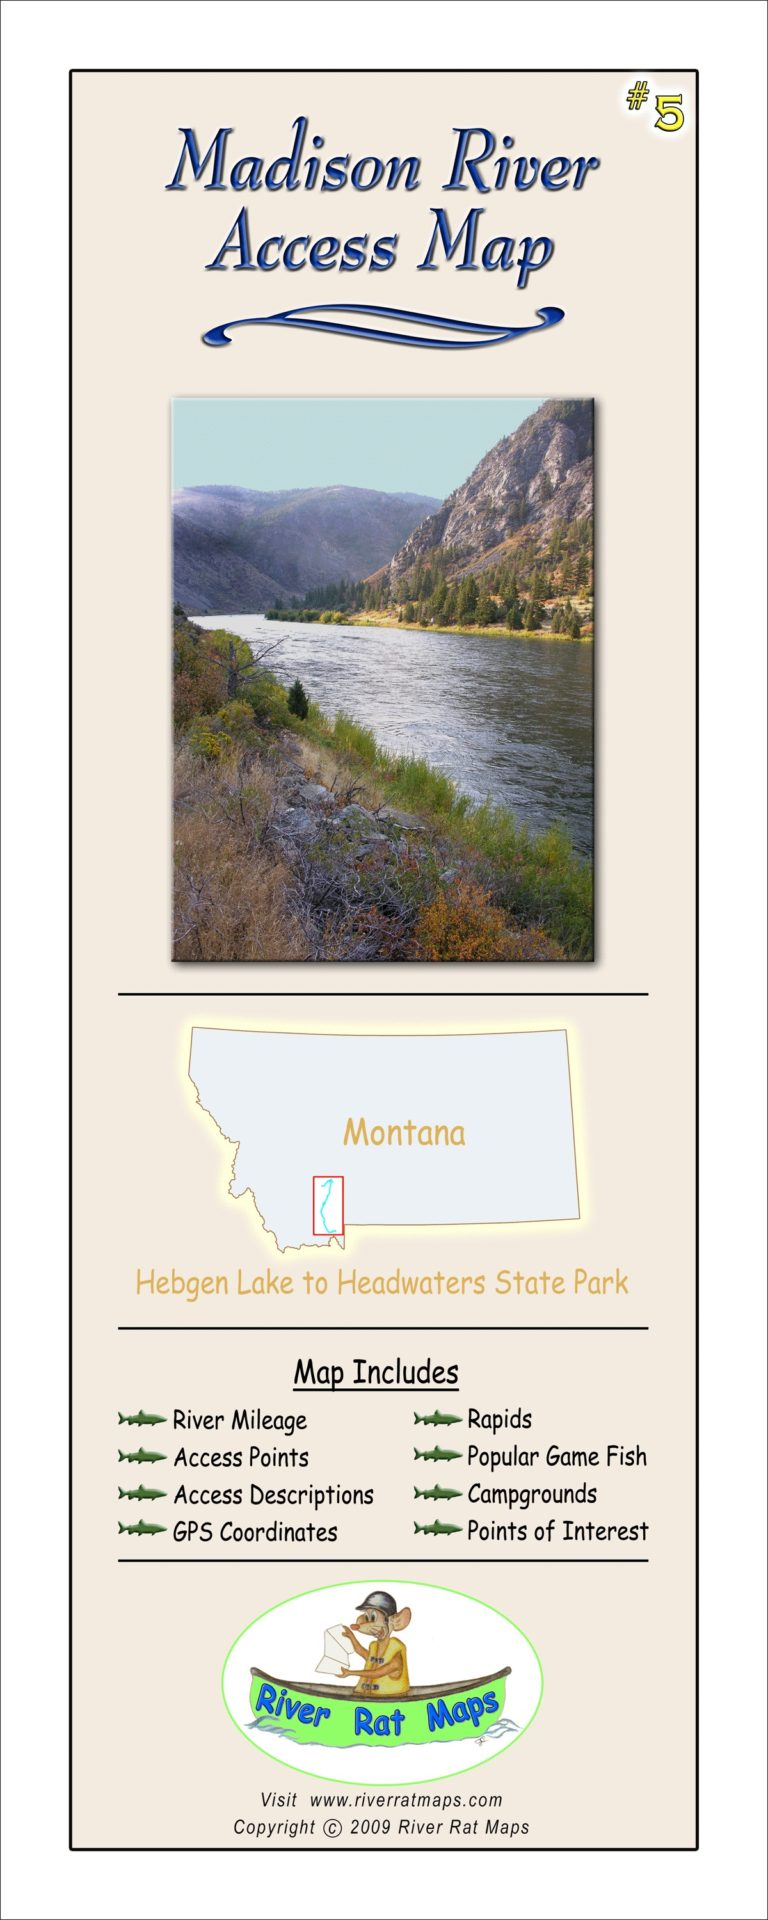 Madison River Map by River Rat Maps